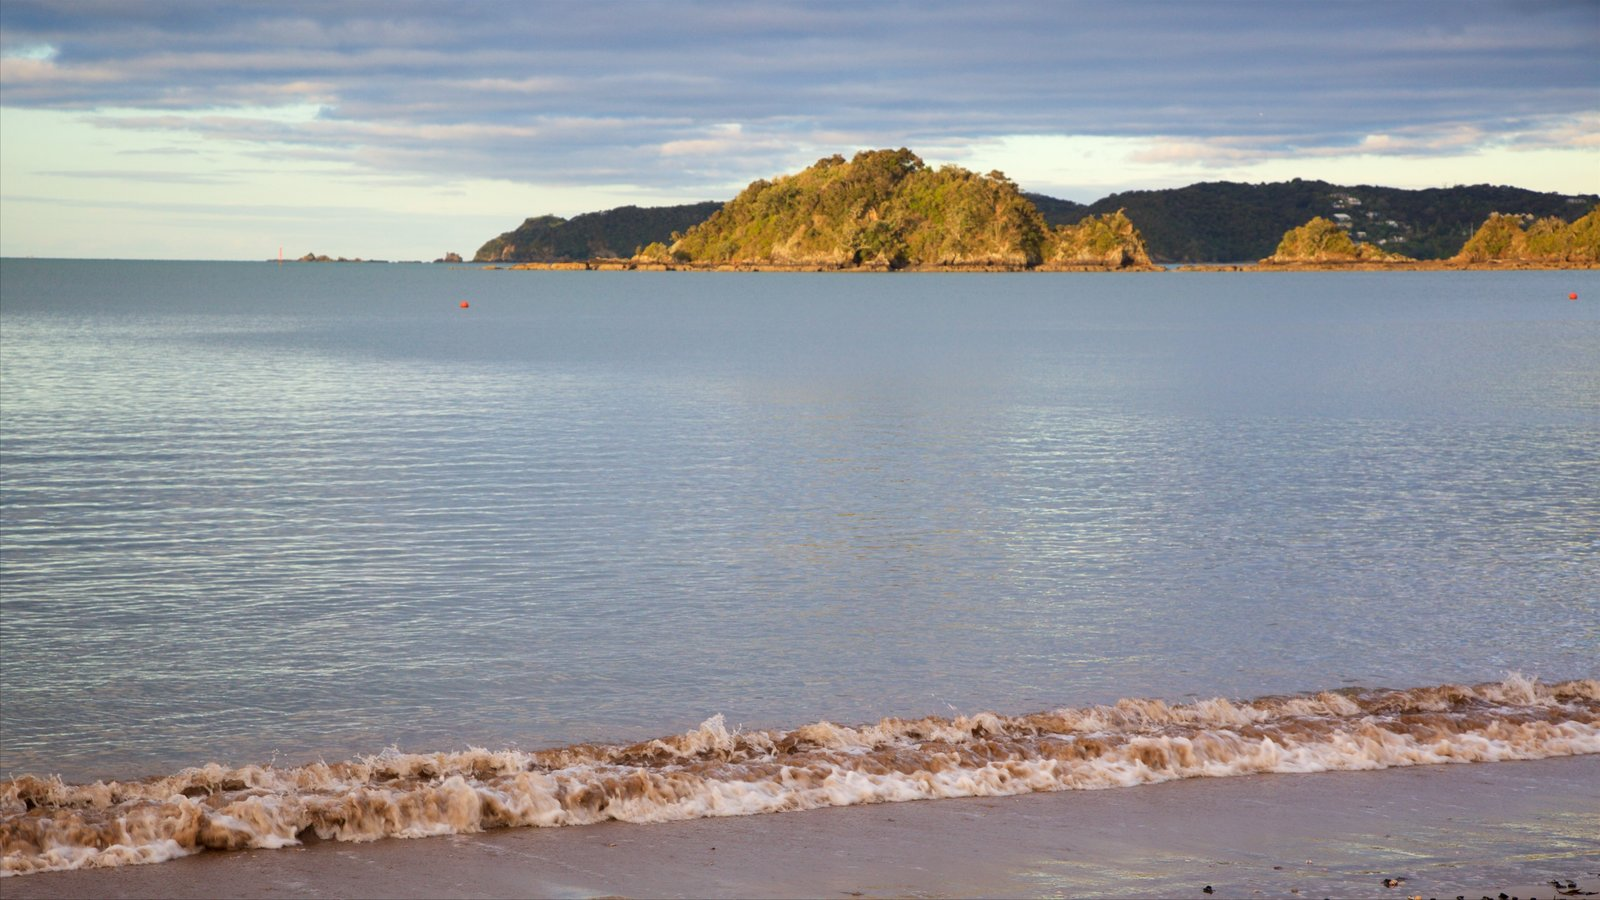 Paihia Beach which includes a bay or harbor, rocky coastline and a beach